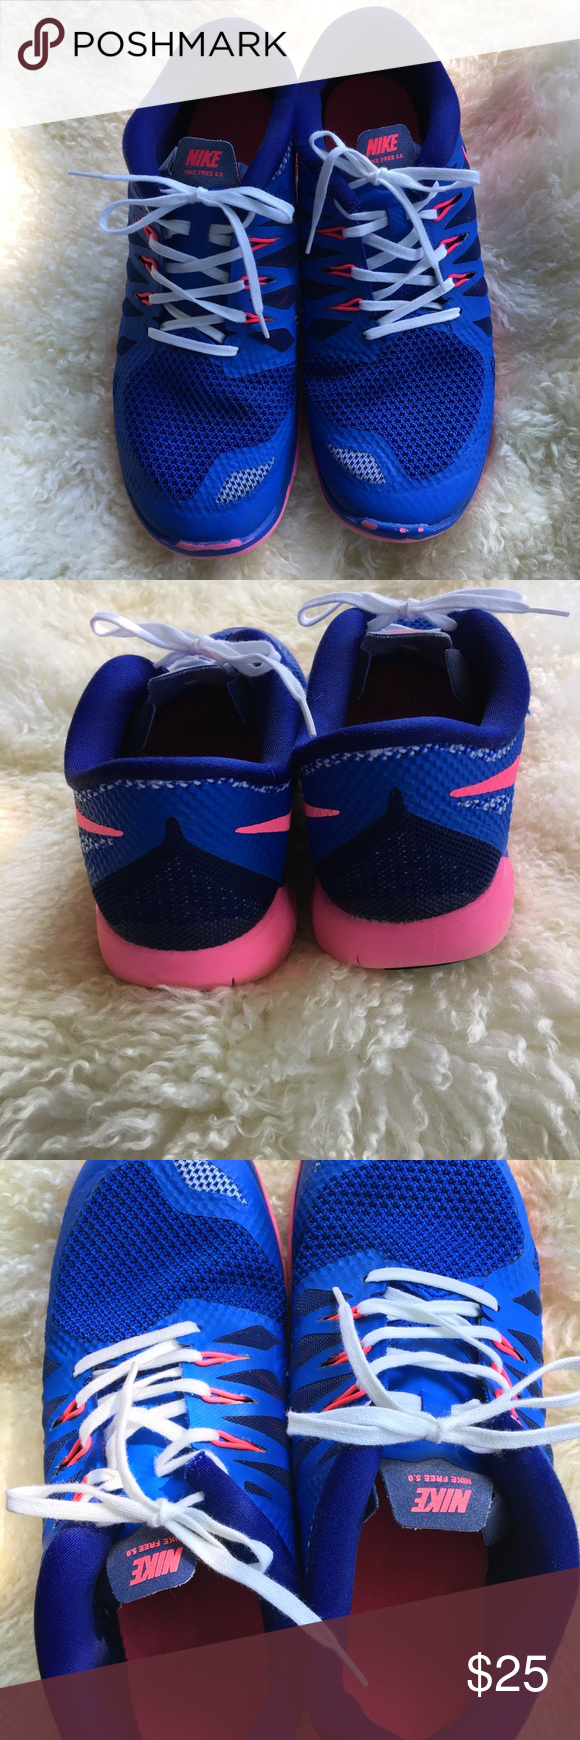 half off 453d3 80bf5 Nike shoes size 6. Nike shoes in great condition. Nike Shoes